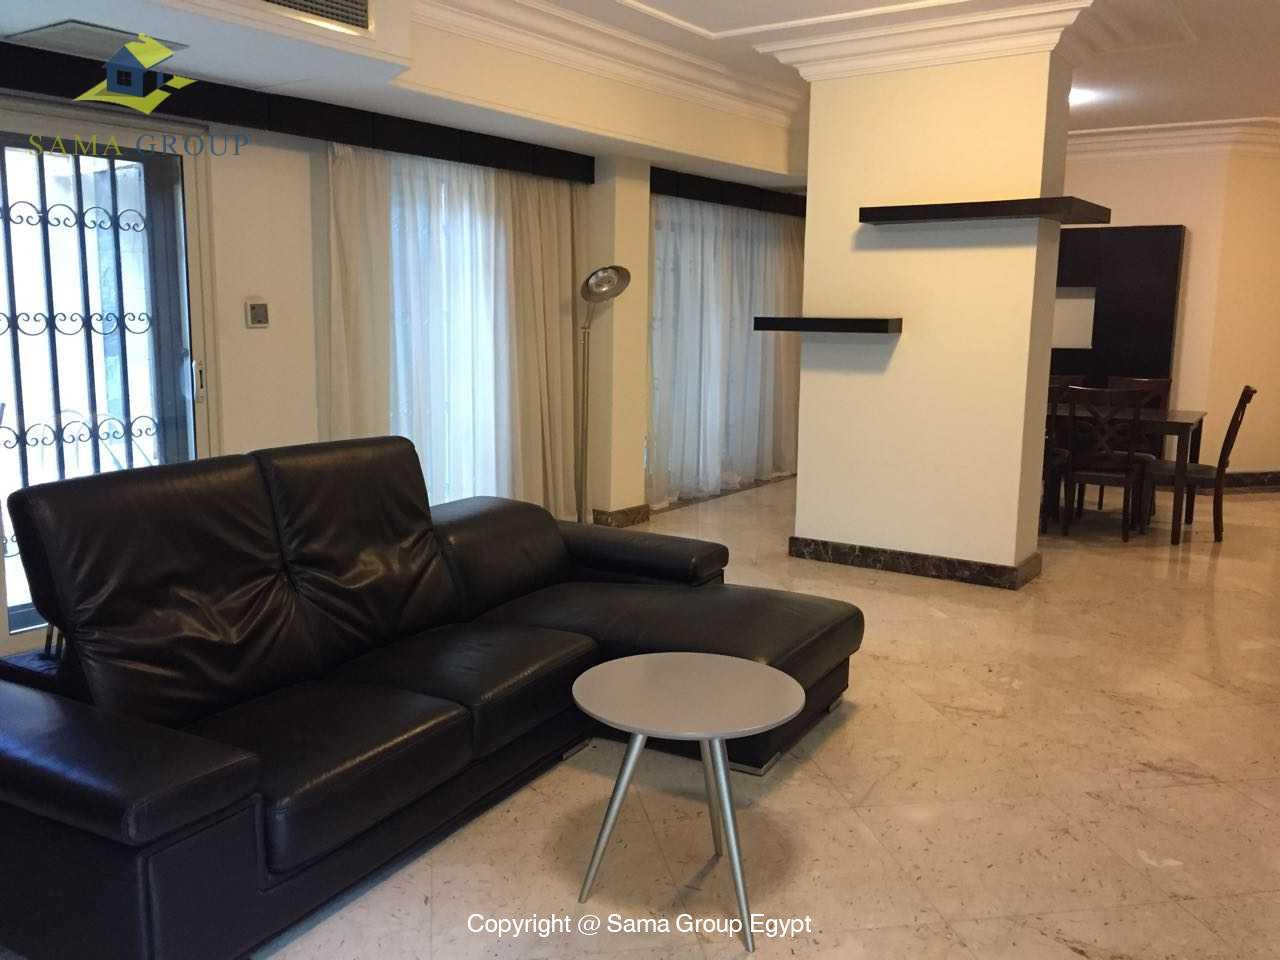 Ground Floor Duplex For Rent,Modern Furnished,Ground Floor - duplex NO #9